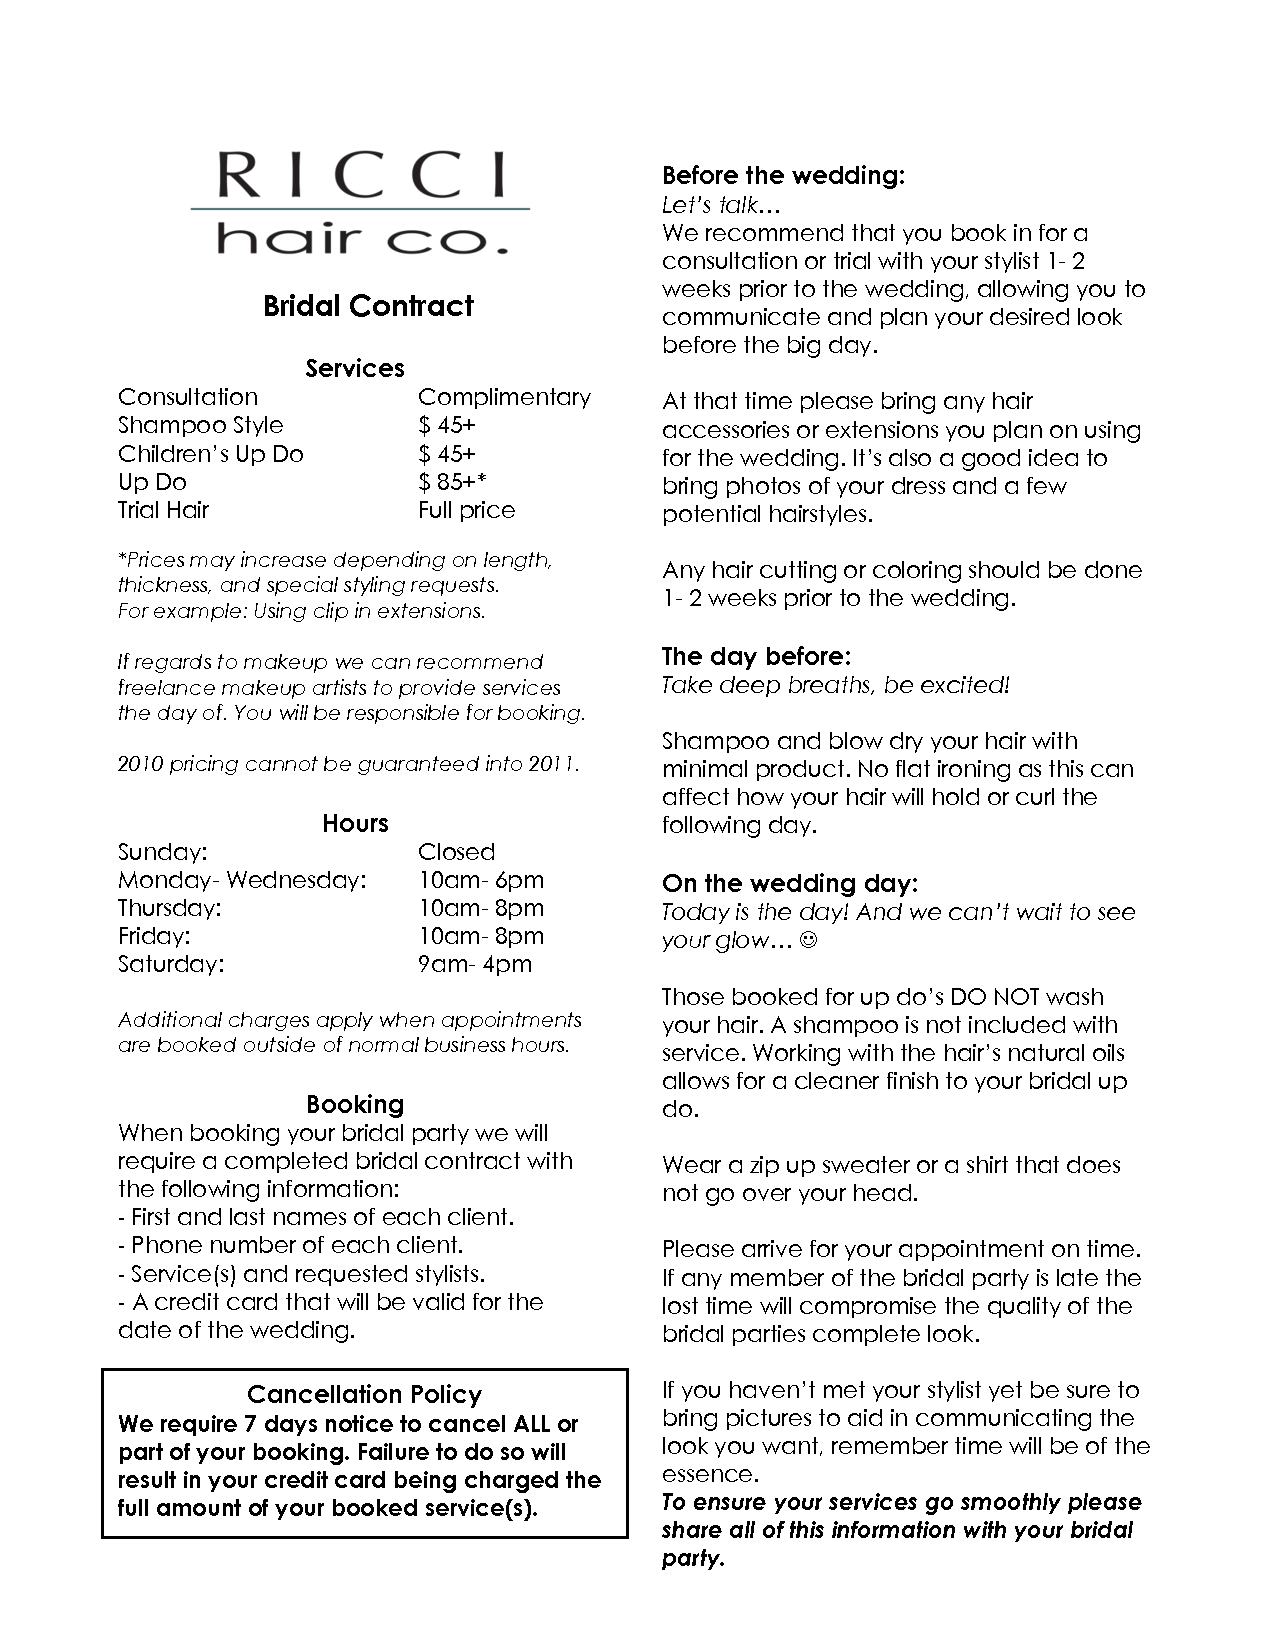 Bridalhaircotract  Affordable Wedding Hair Contract Client